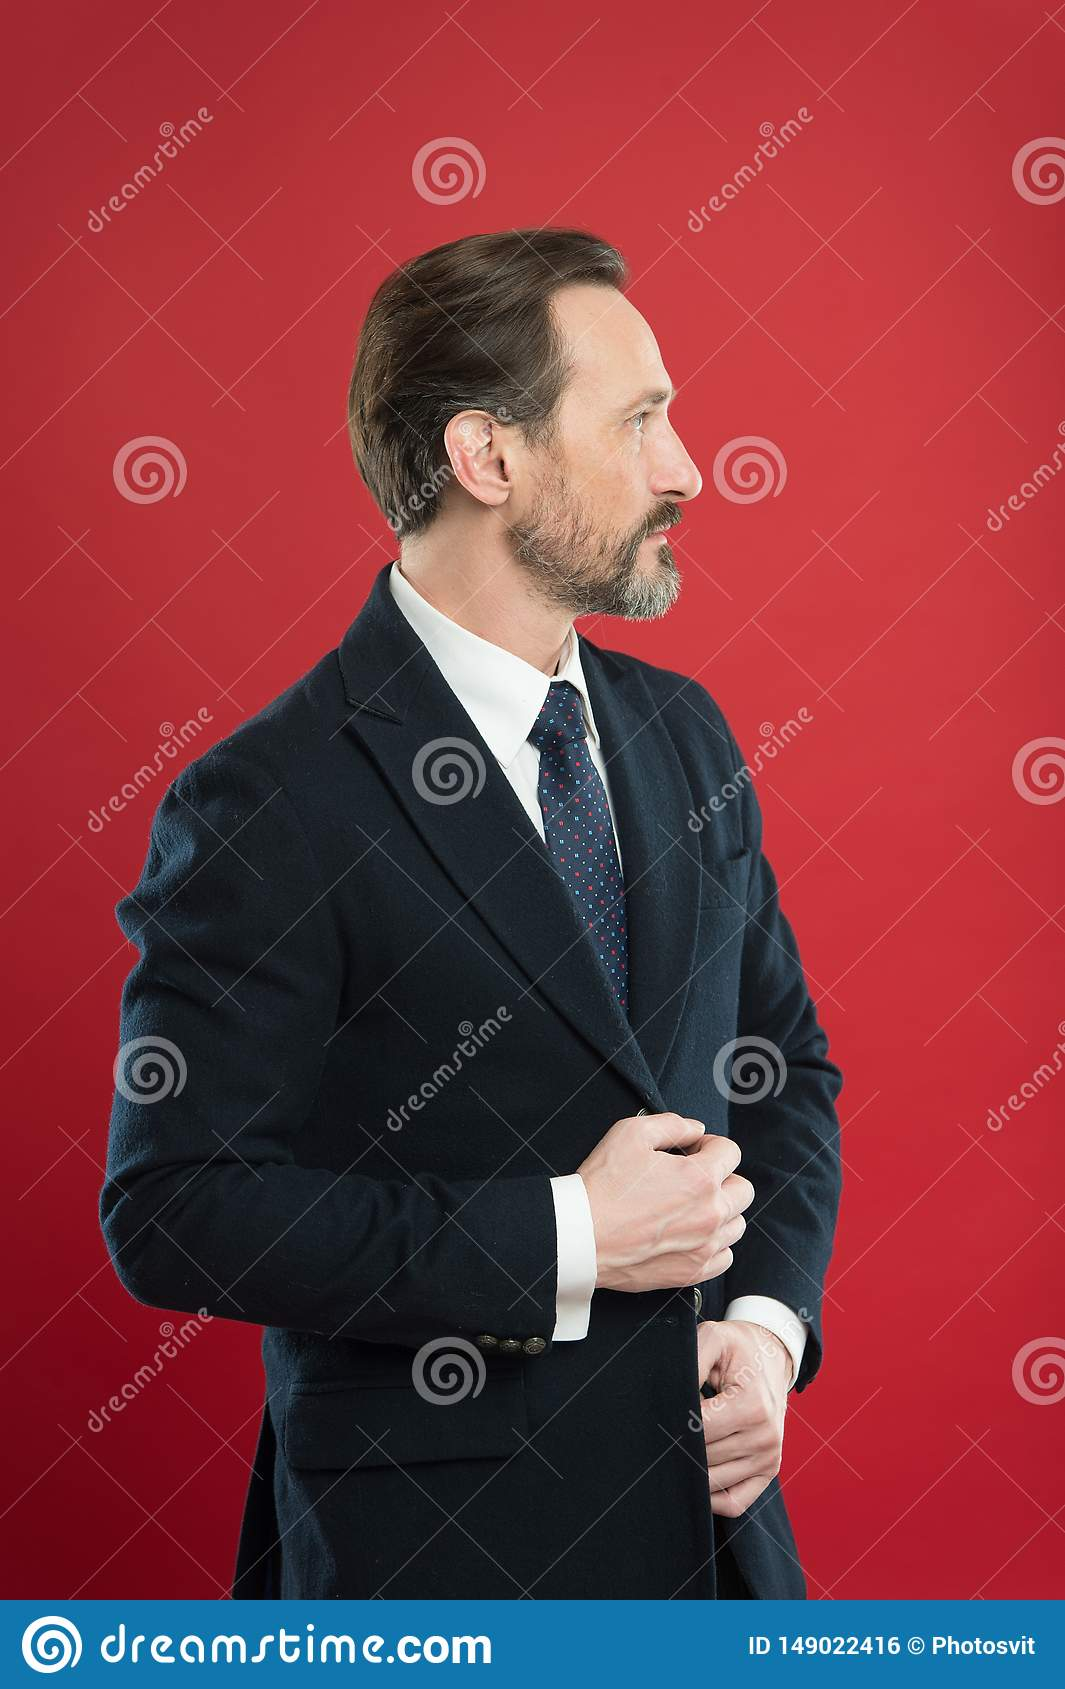 First impression concept. Impeccable style. Businessman fashionable outfit. Attractive man wear suit. Perfect elegant